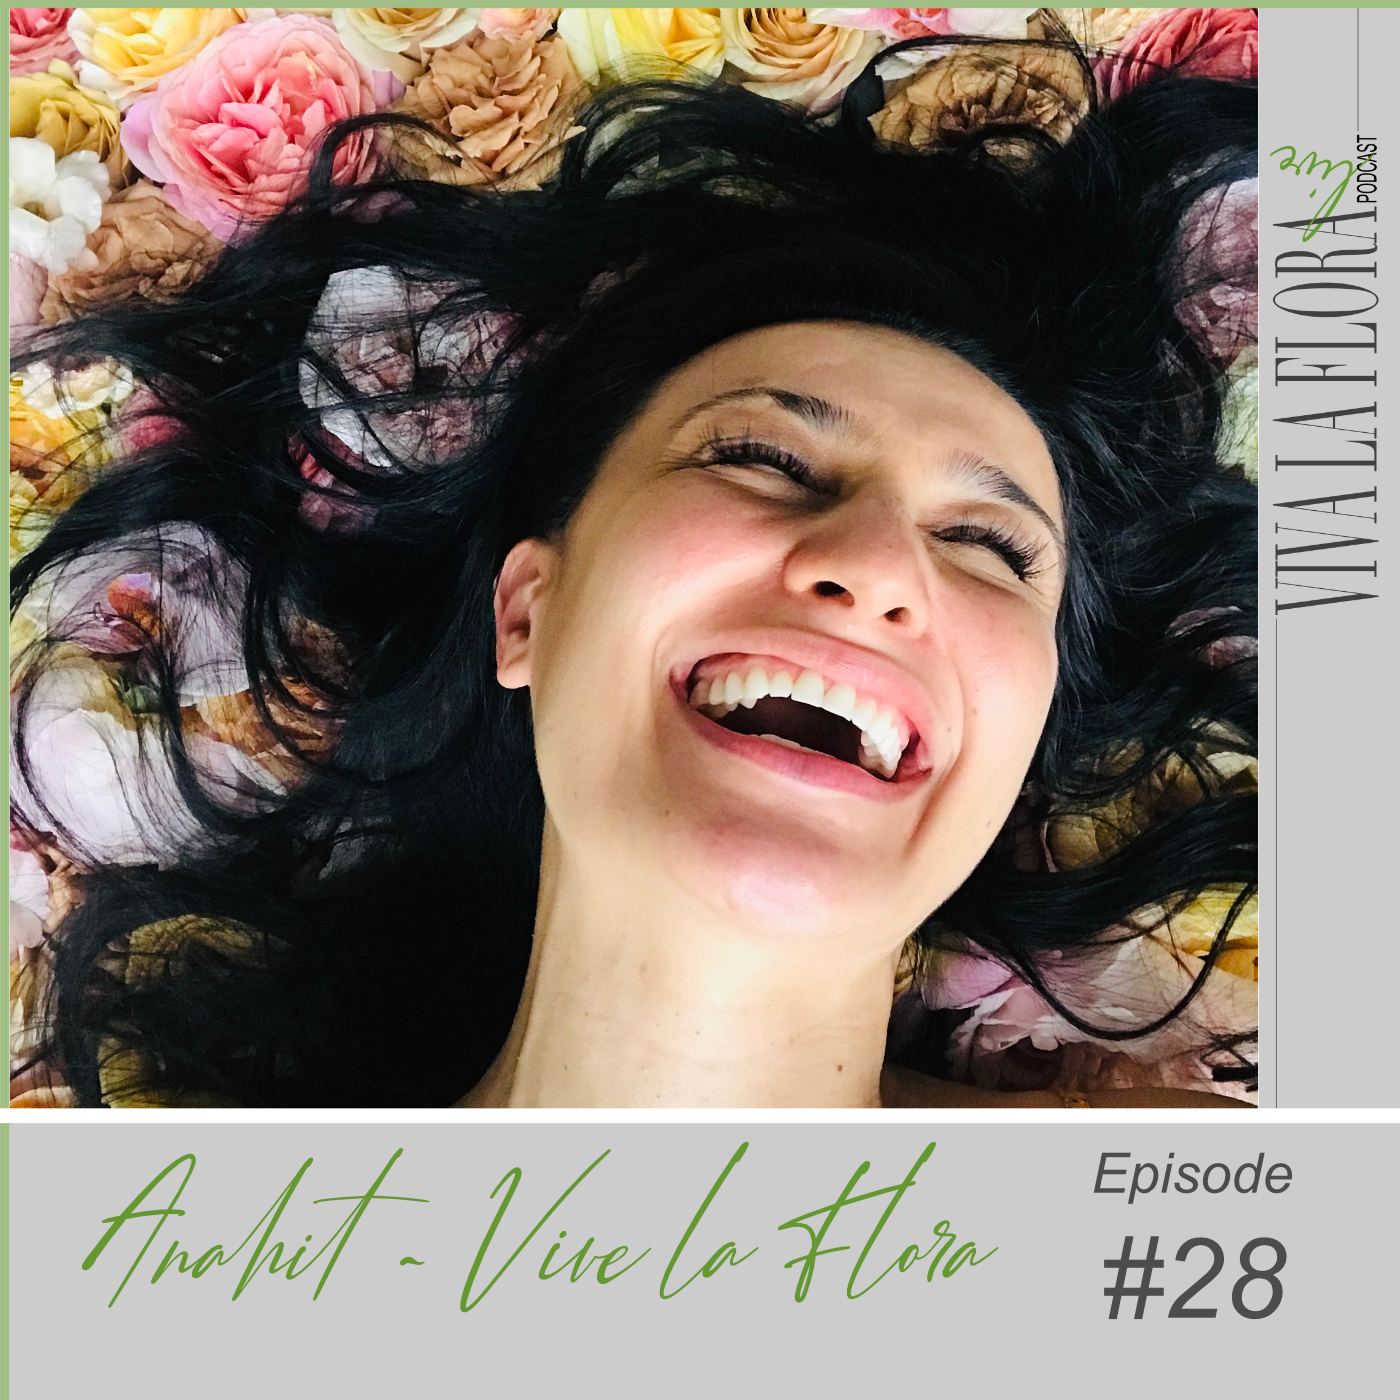 girl smiling laying on garden flowers for cover of Viva La Flora Live Podcast with Anahit